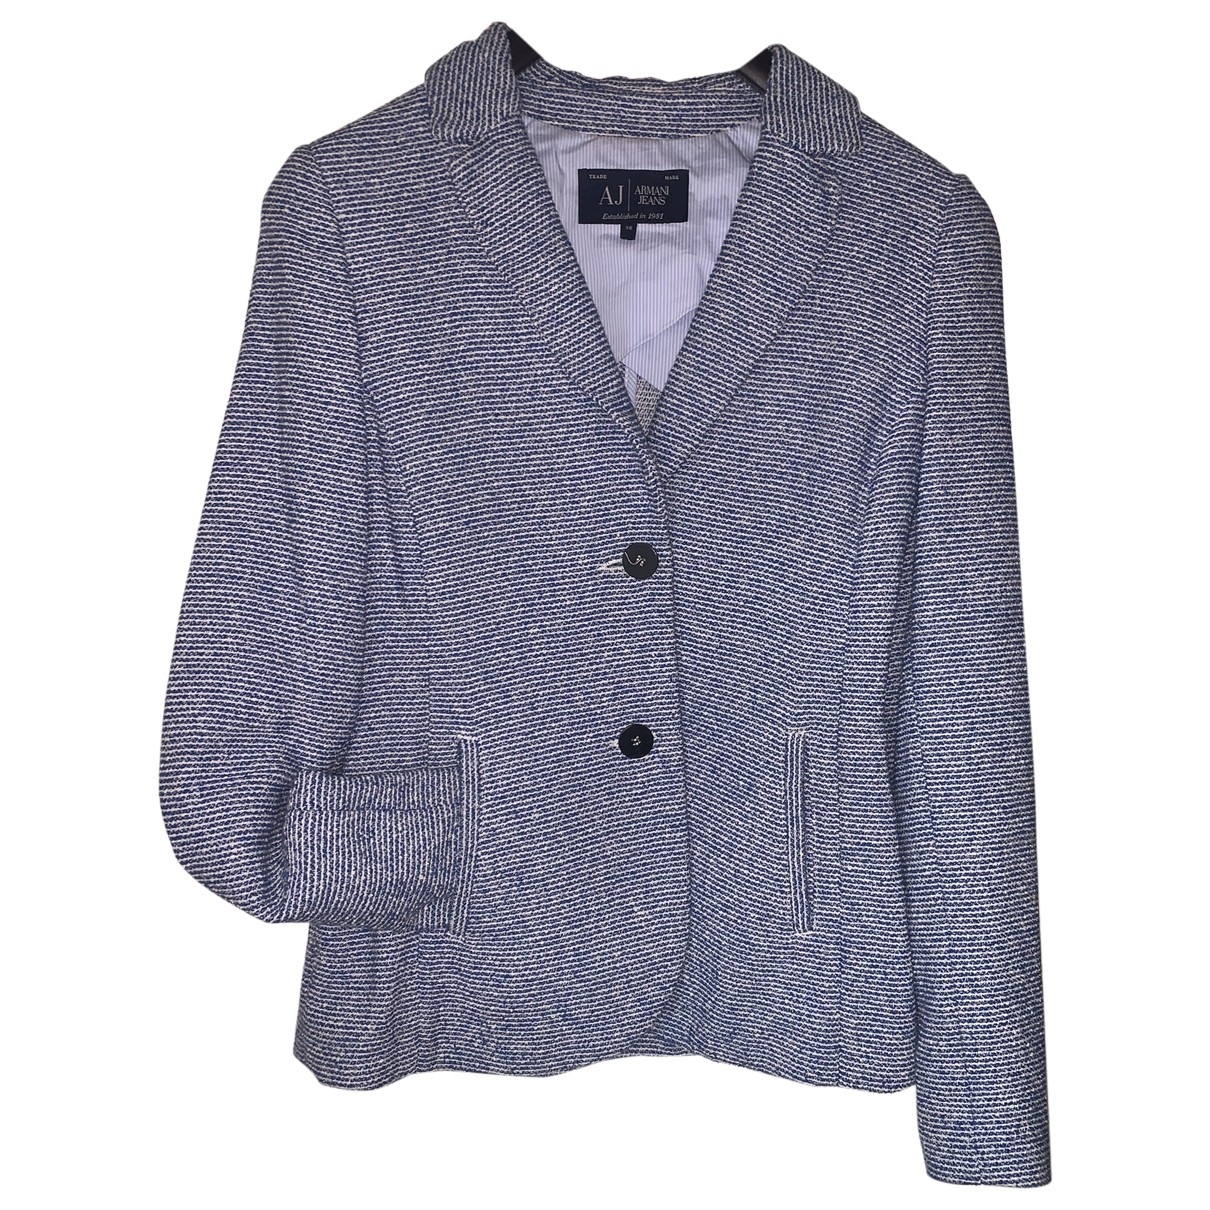 Armani Jeans \N Blue Cotton jacket for Women 38 IT